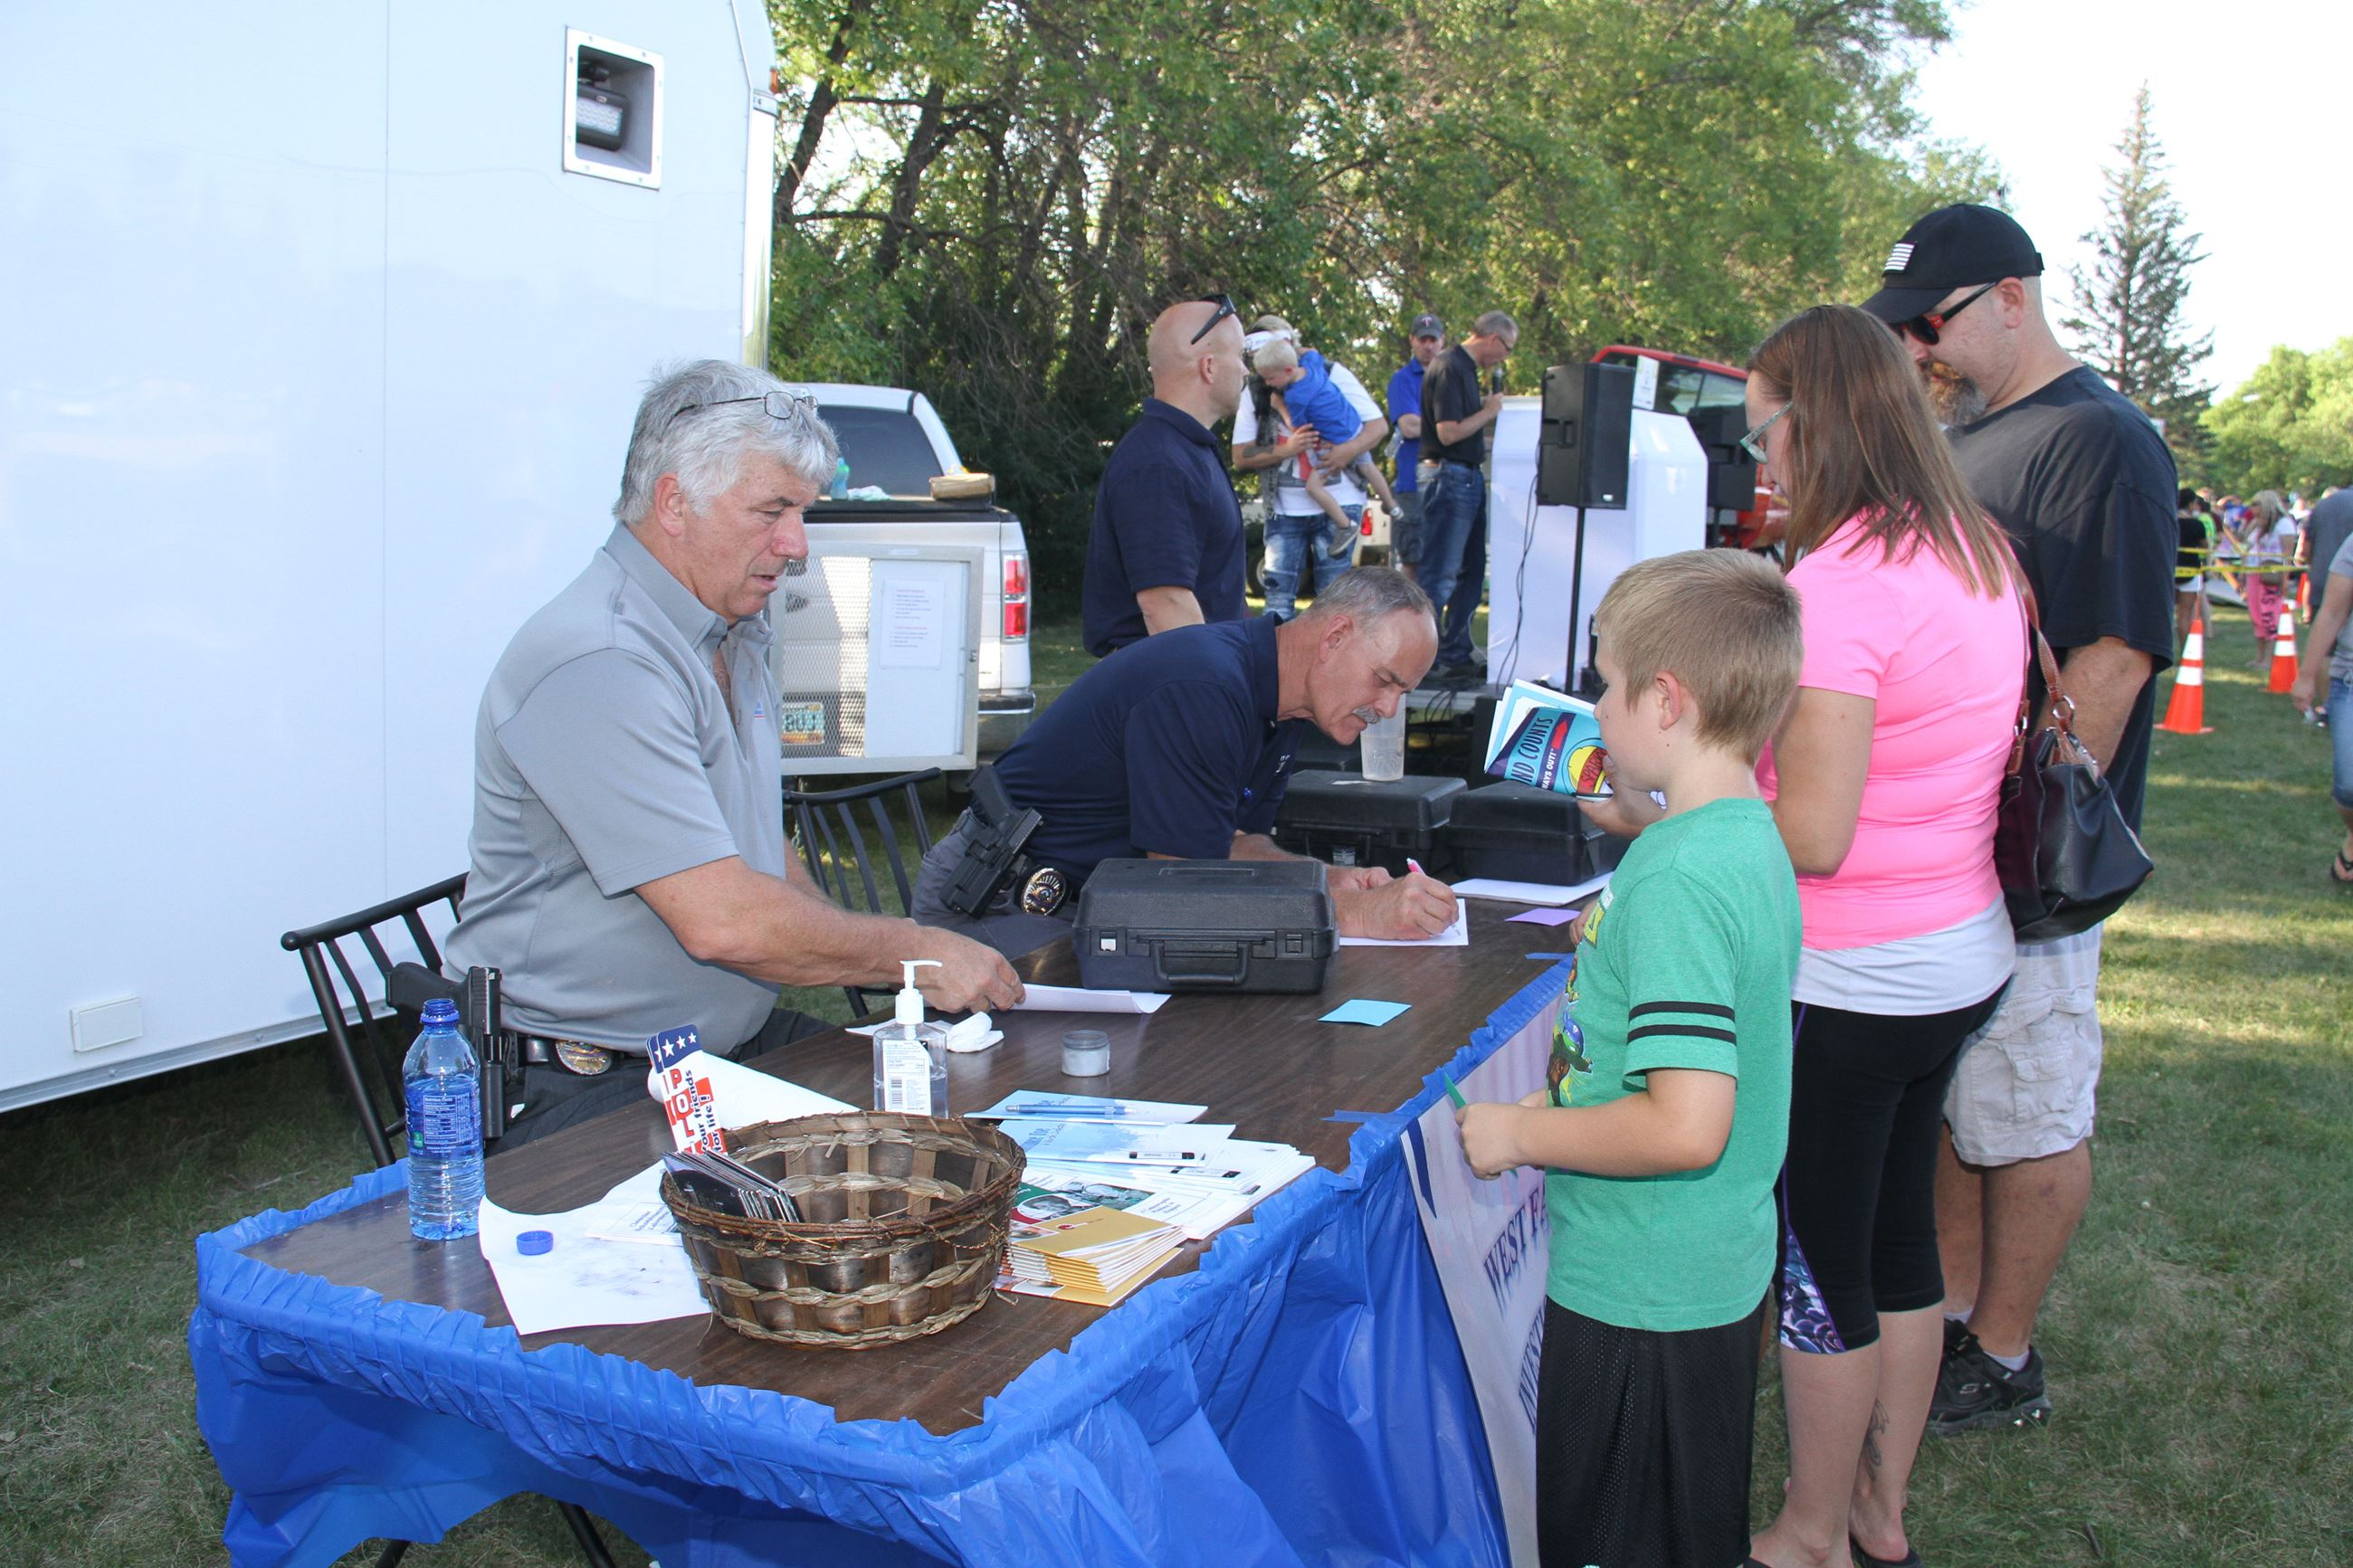 Attendees visit the West Fargo Police Department investigations table